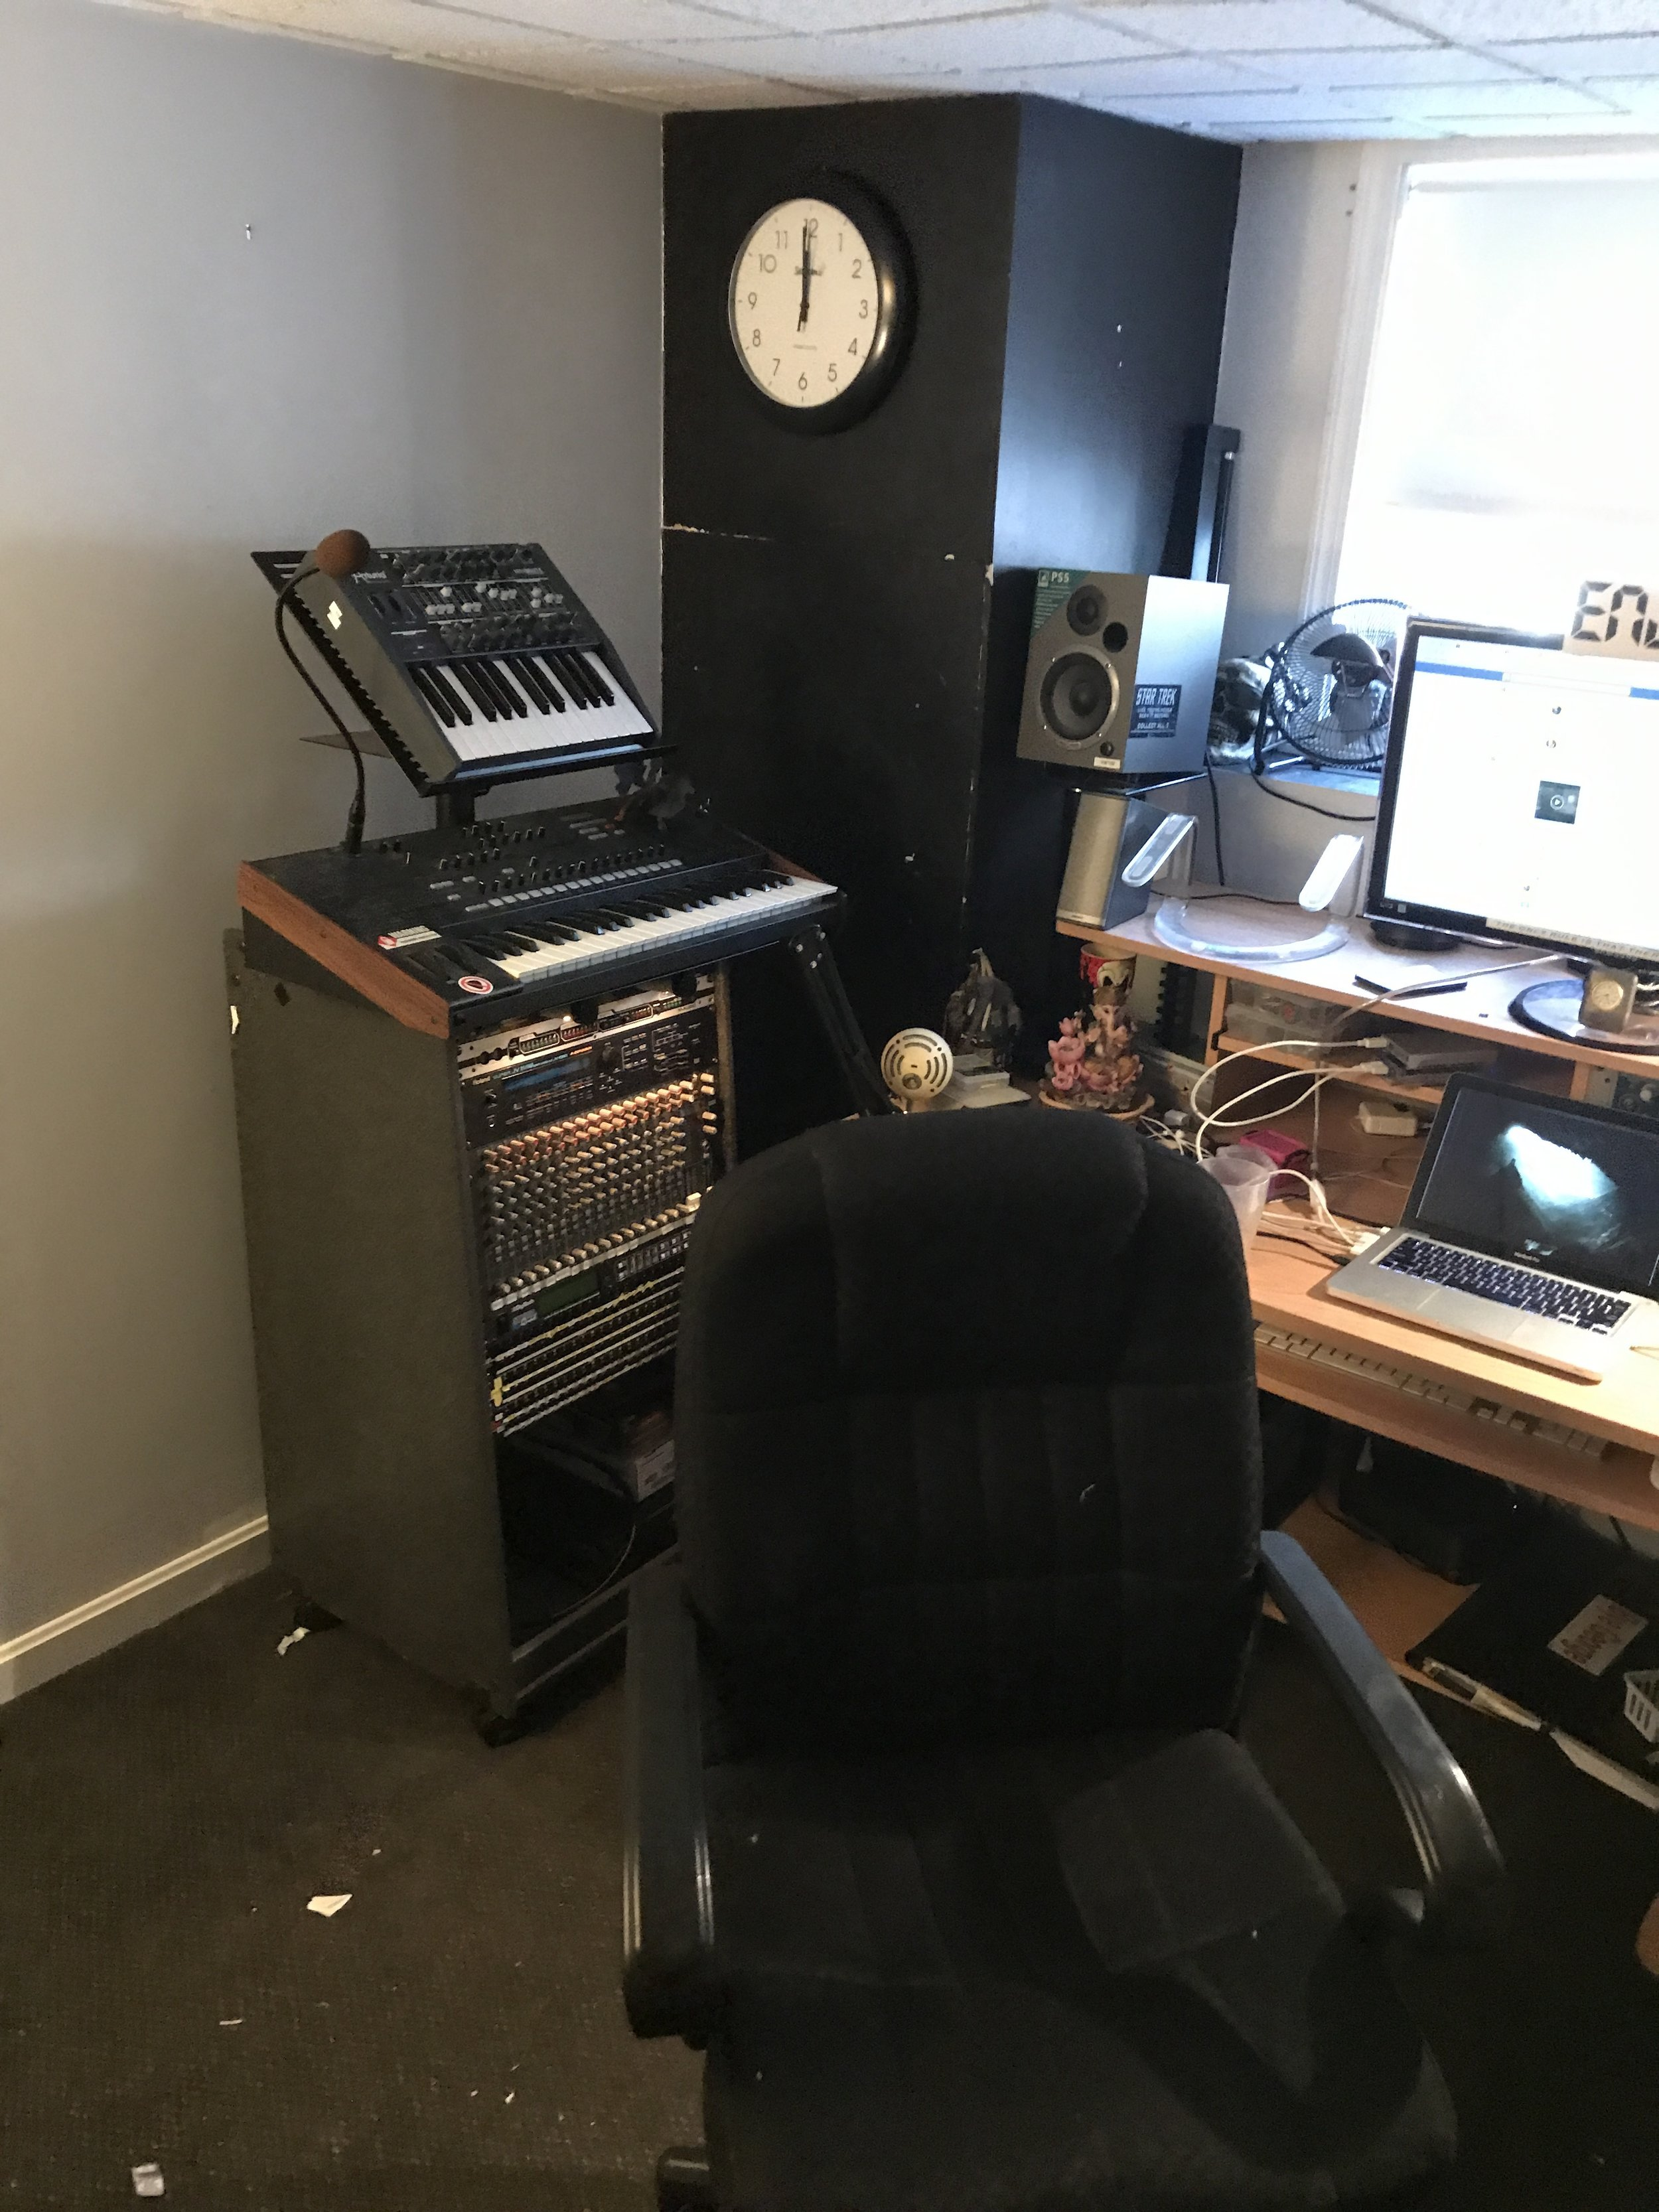 Desk and tower 2